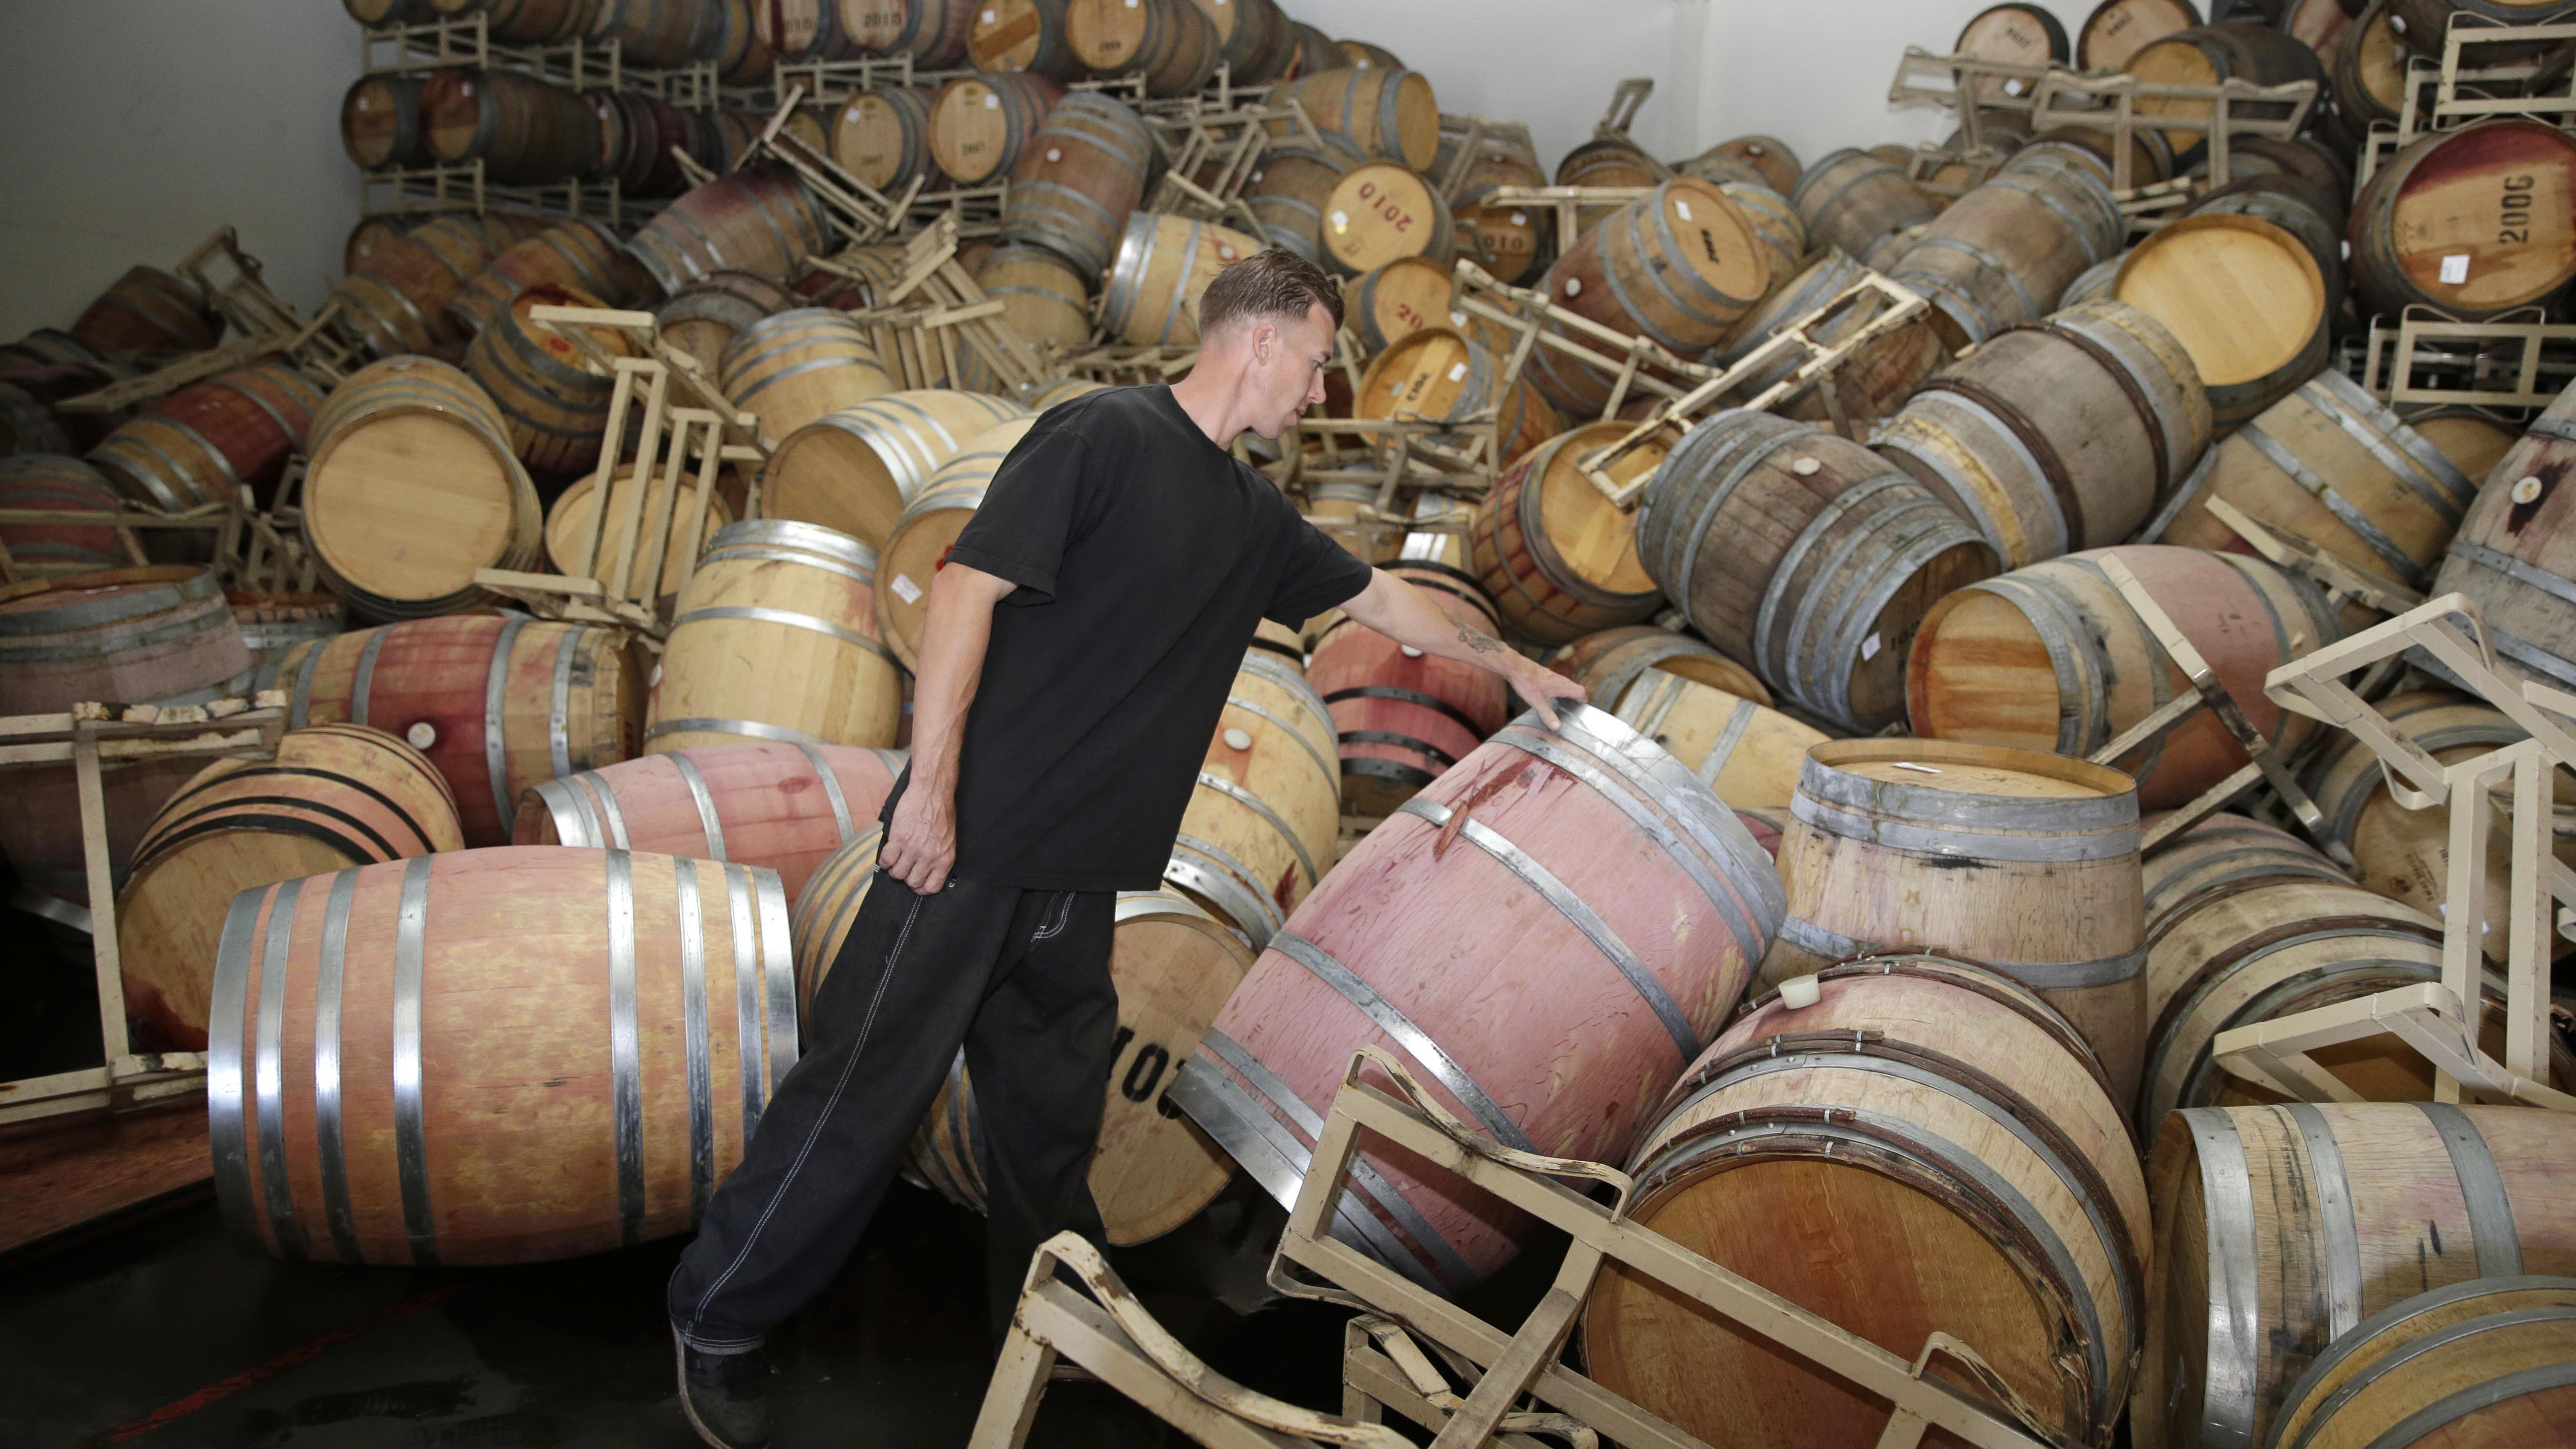 Cellar worker Daniel Nelson looks over toppled barrels of Cabernet Sauvignon following an earthquake at the B.R. Cohn Winery barrel storage facility Sunday, Aug. 24, 2014, in Napa, Calif. Winemakers in California's storied Napa Valley woke up to thousands of broken bottles, barrels and gallons of ruined wine as a result of Sunday's earthquake.  (AP Photo/Eric Risberg)